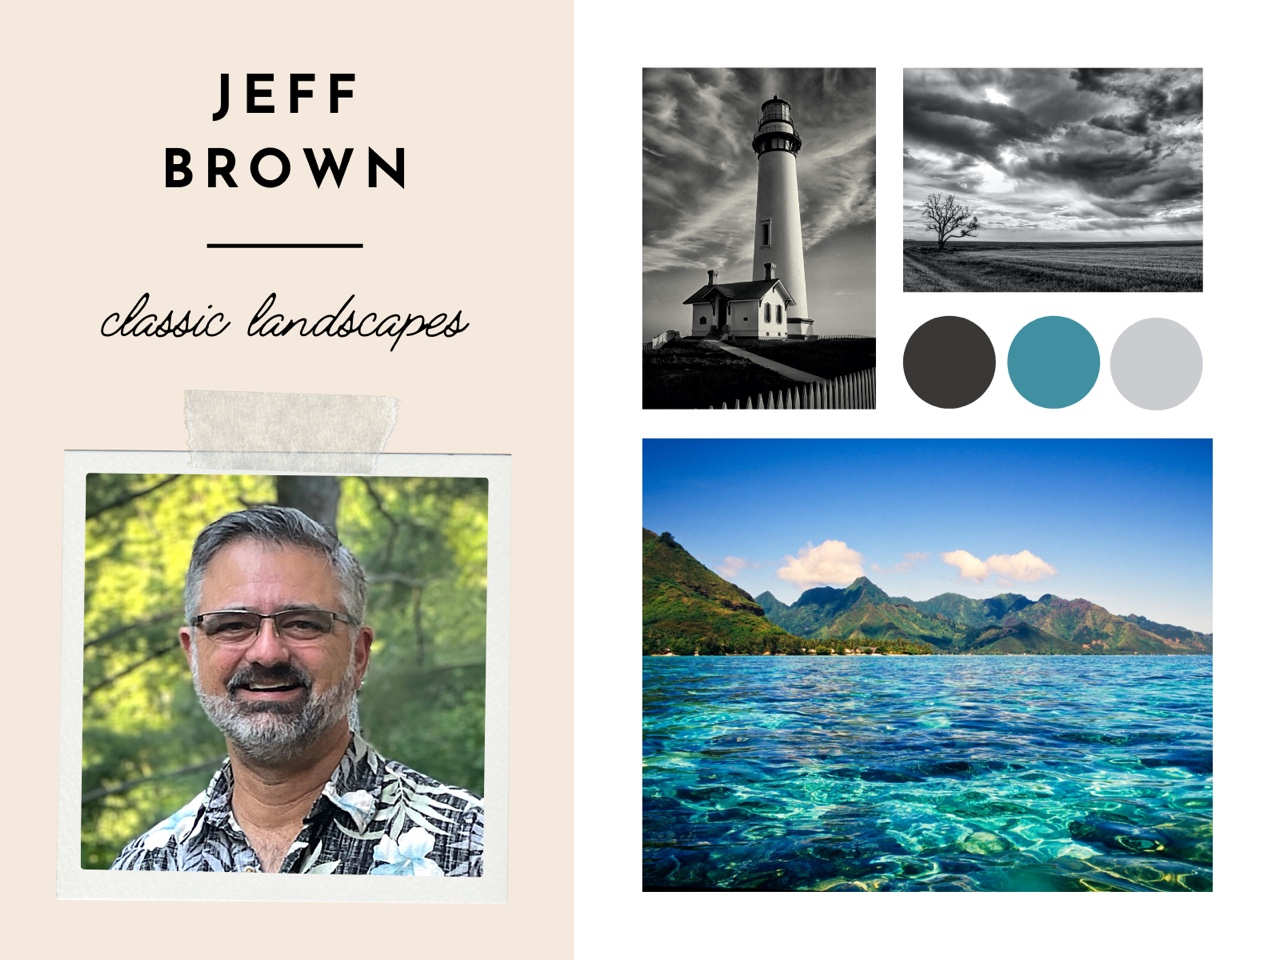 Jeff Brown